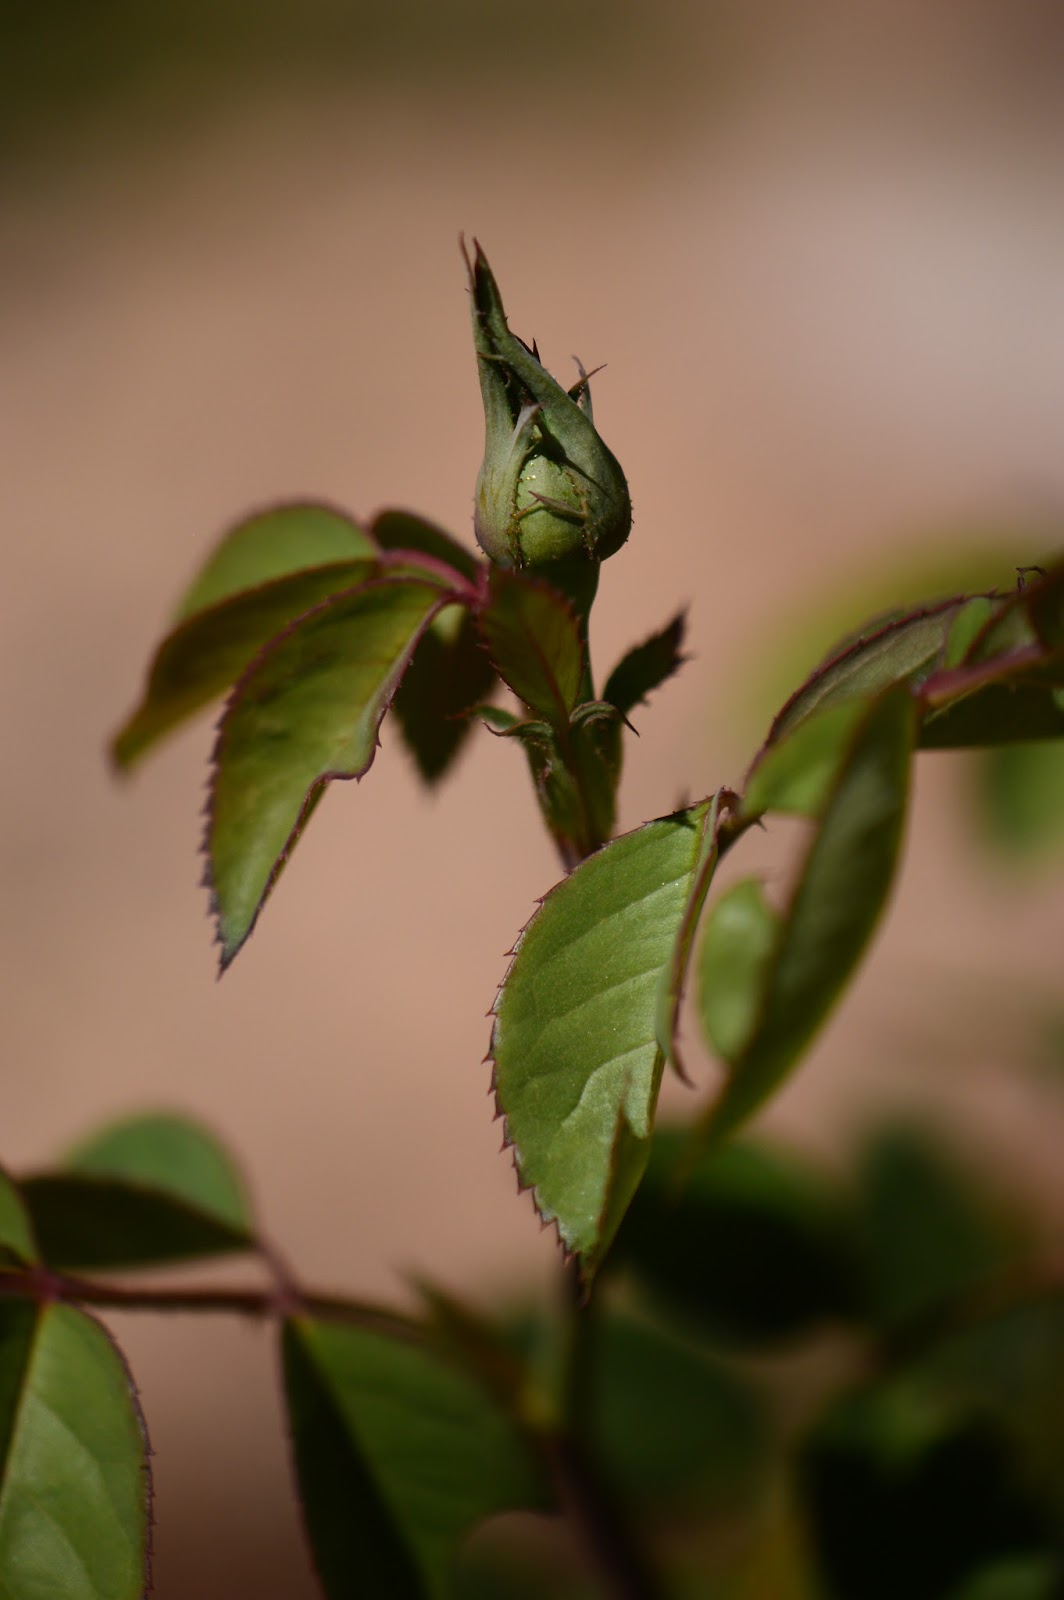 The Alnwick Rose flower bud